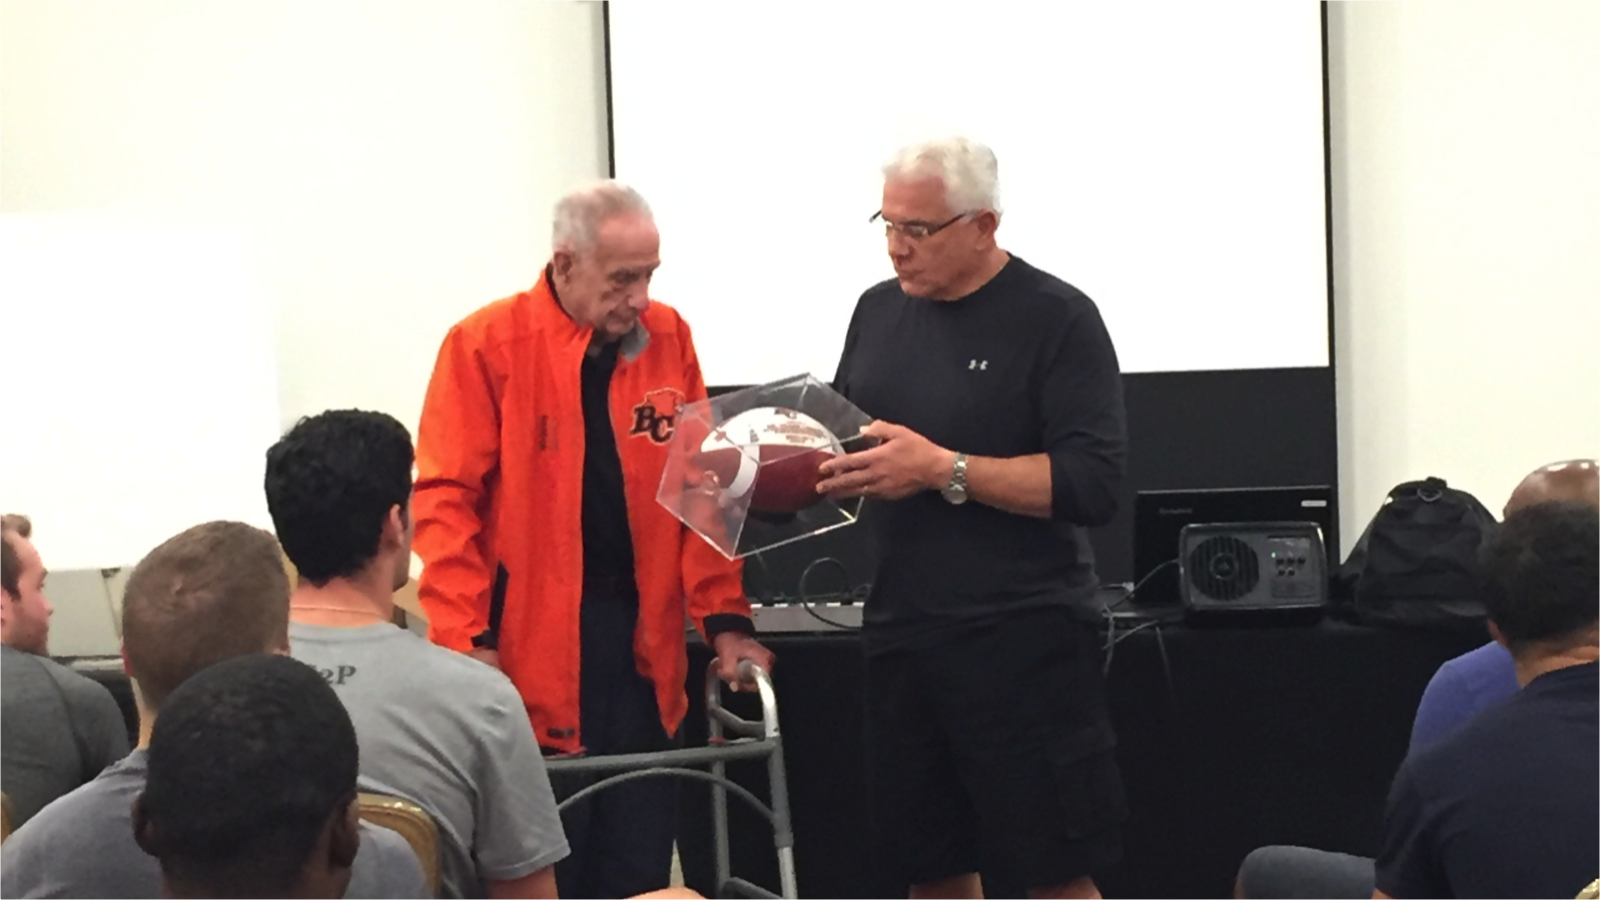 BC Lions Bid Farewell To Dr. Frank Lodato - BC Lions